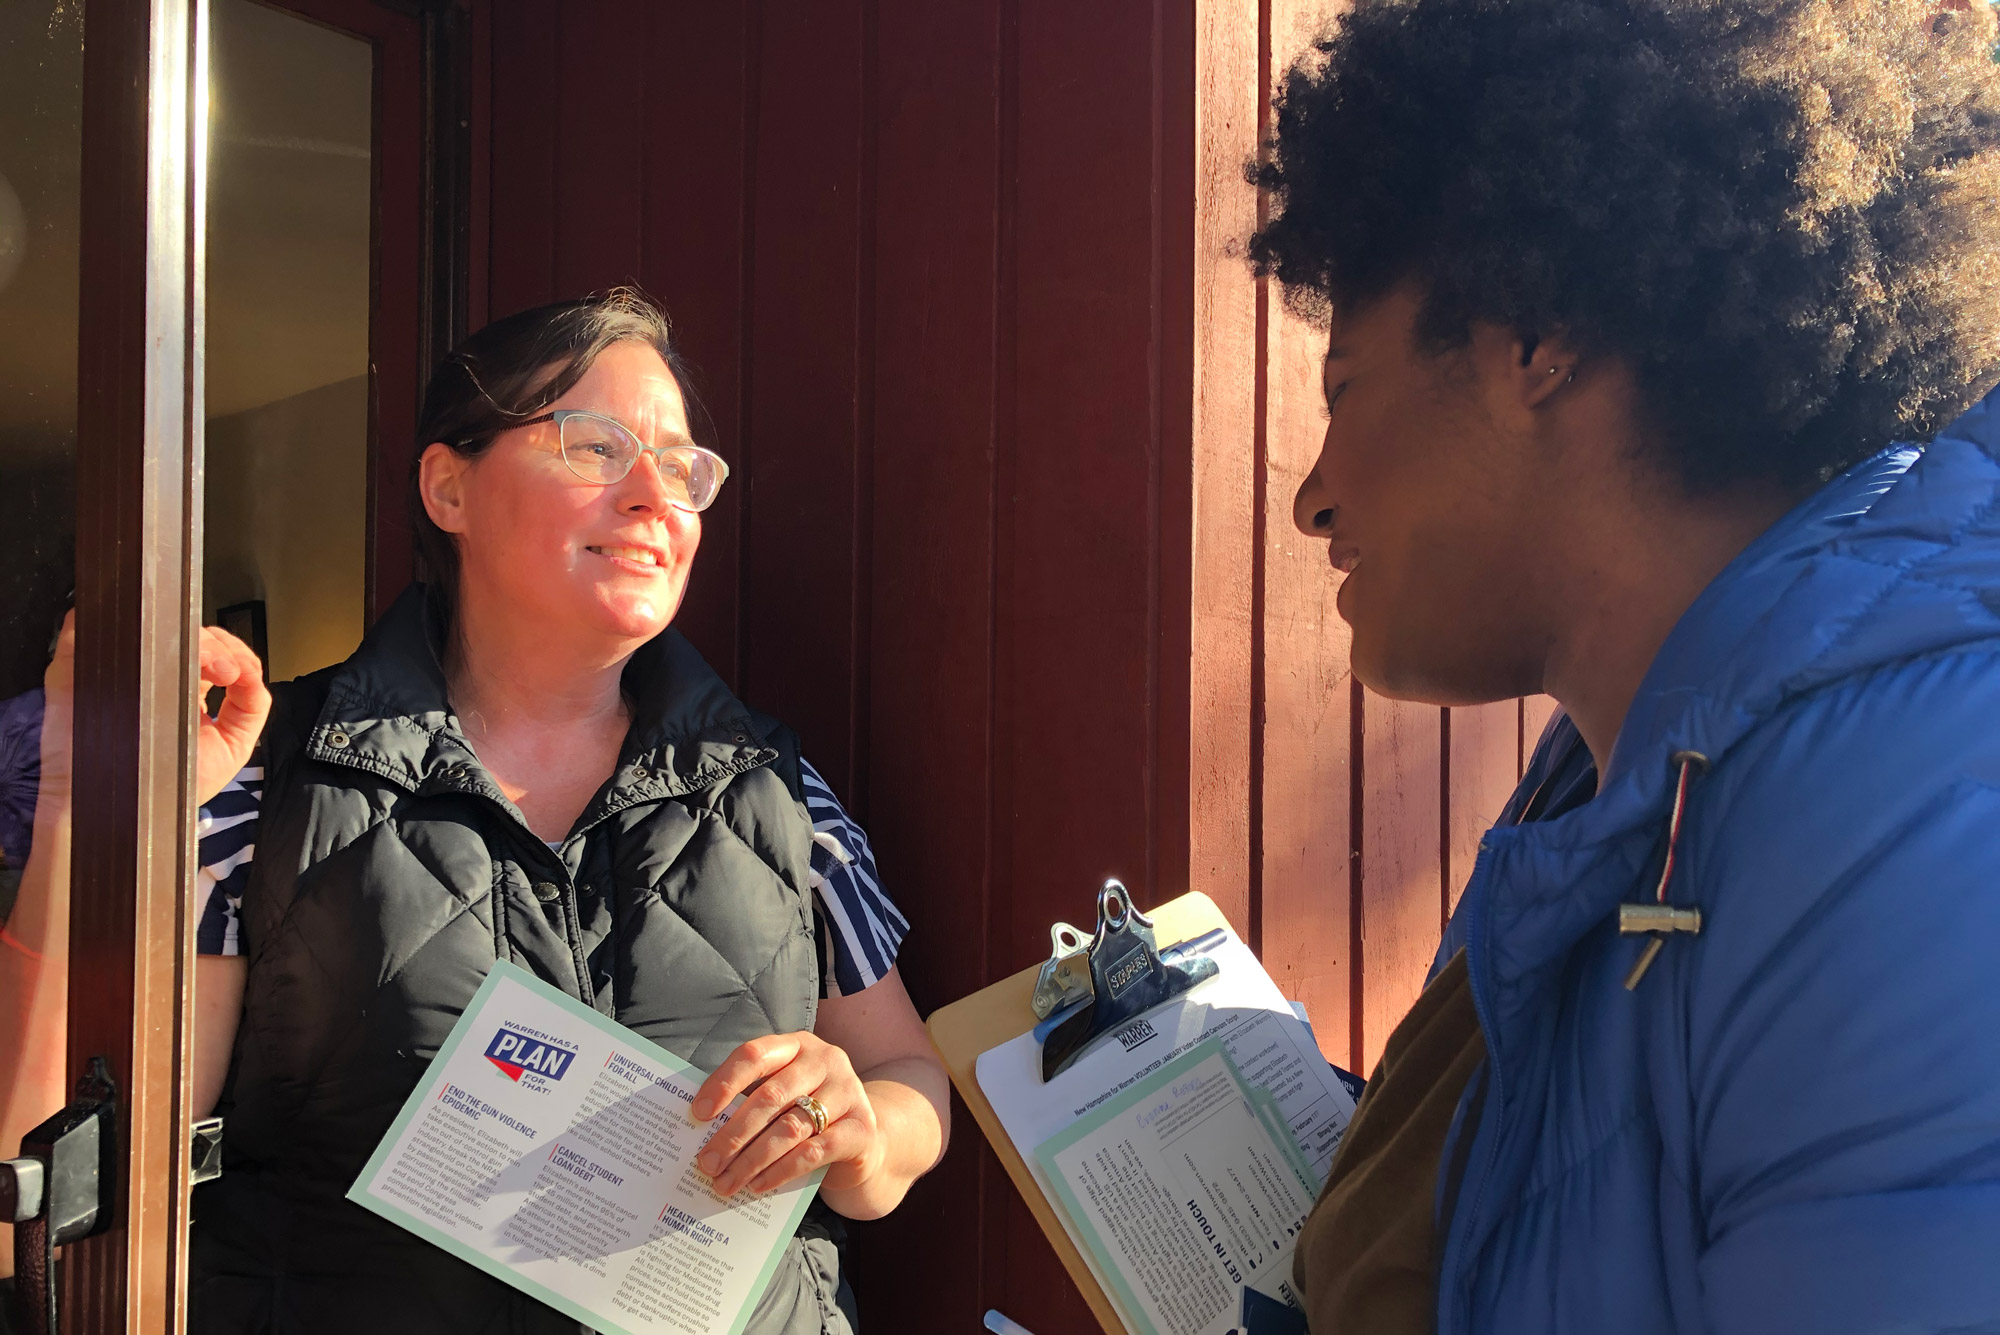 Niya Doyle (CGS'22) speaking with New Hampshire resident Katie Kelly while canvassing for Elizabeth Warren.